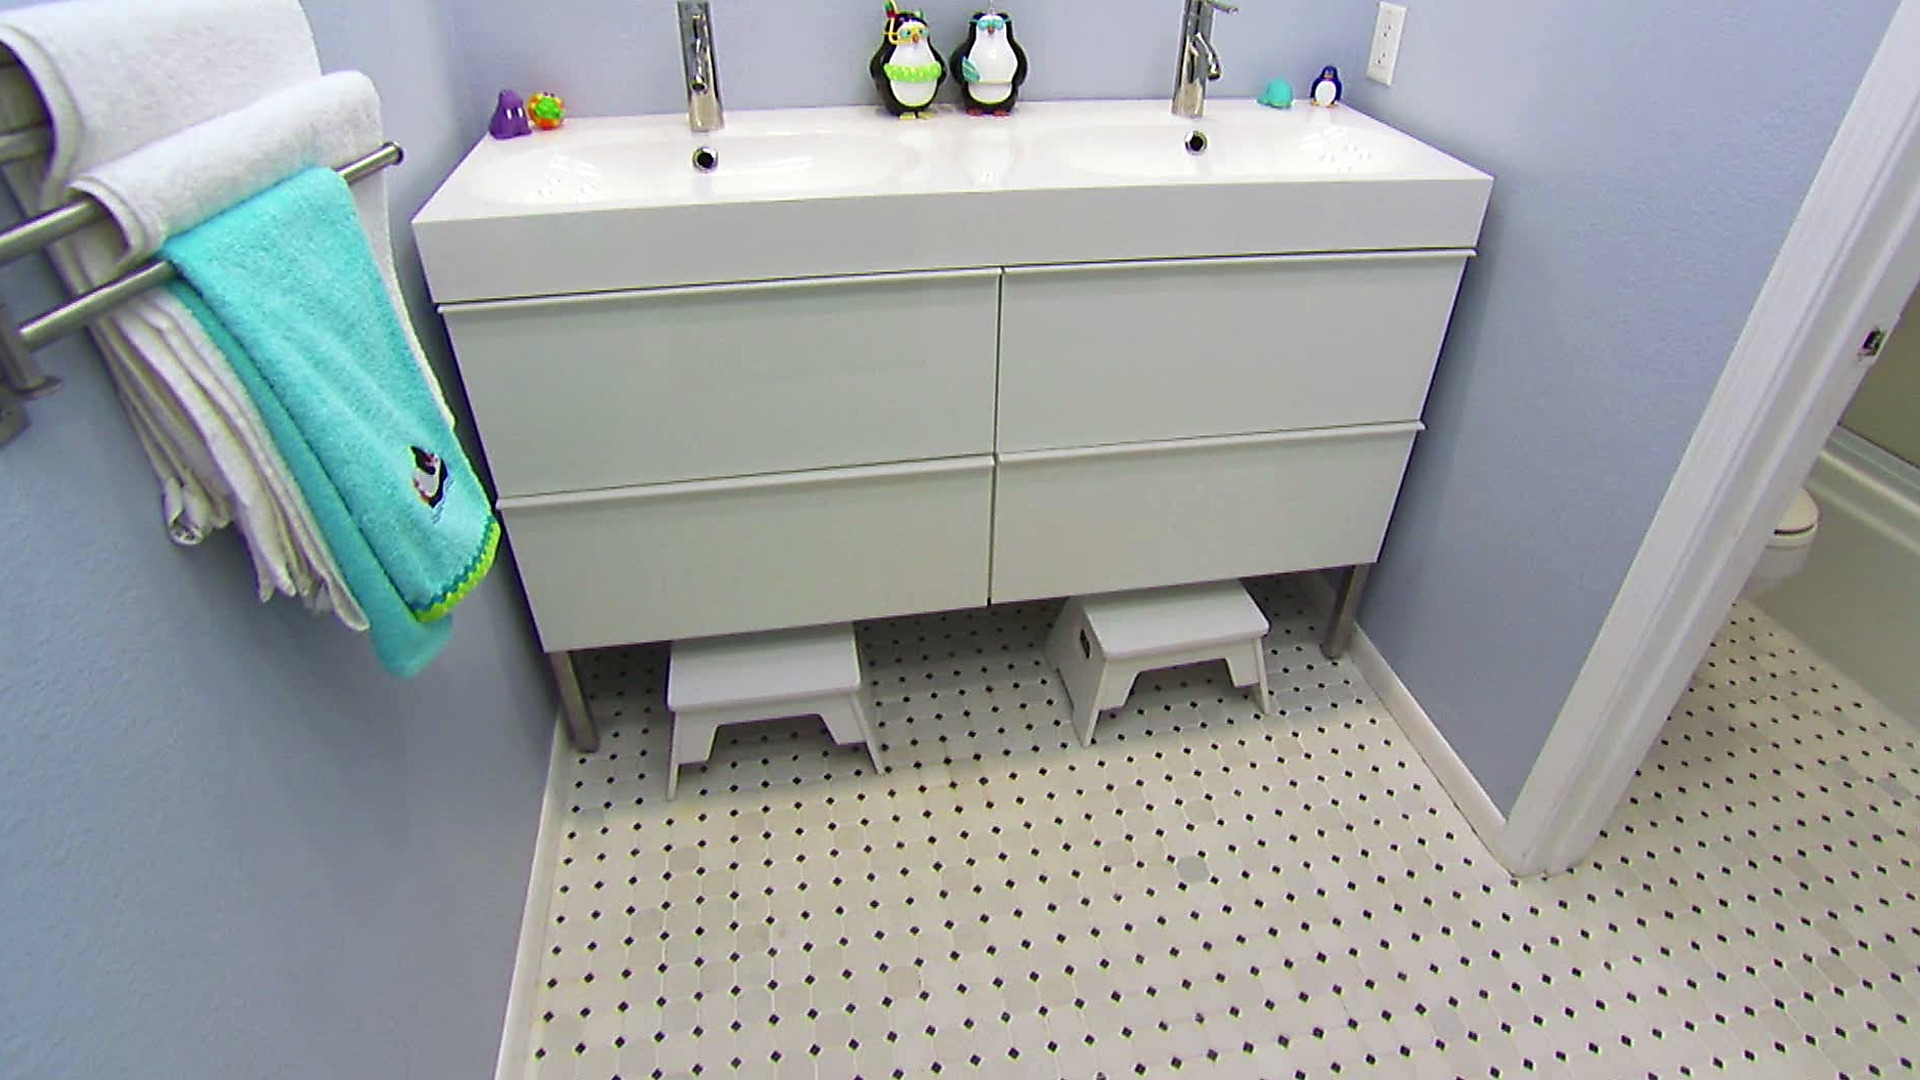 Jack And Jill Bathroom Layouts: Pictures, Options & Ideas   Hgtv Cute Jack And Jill Bathroom